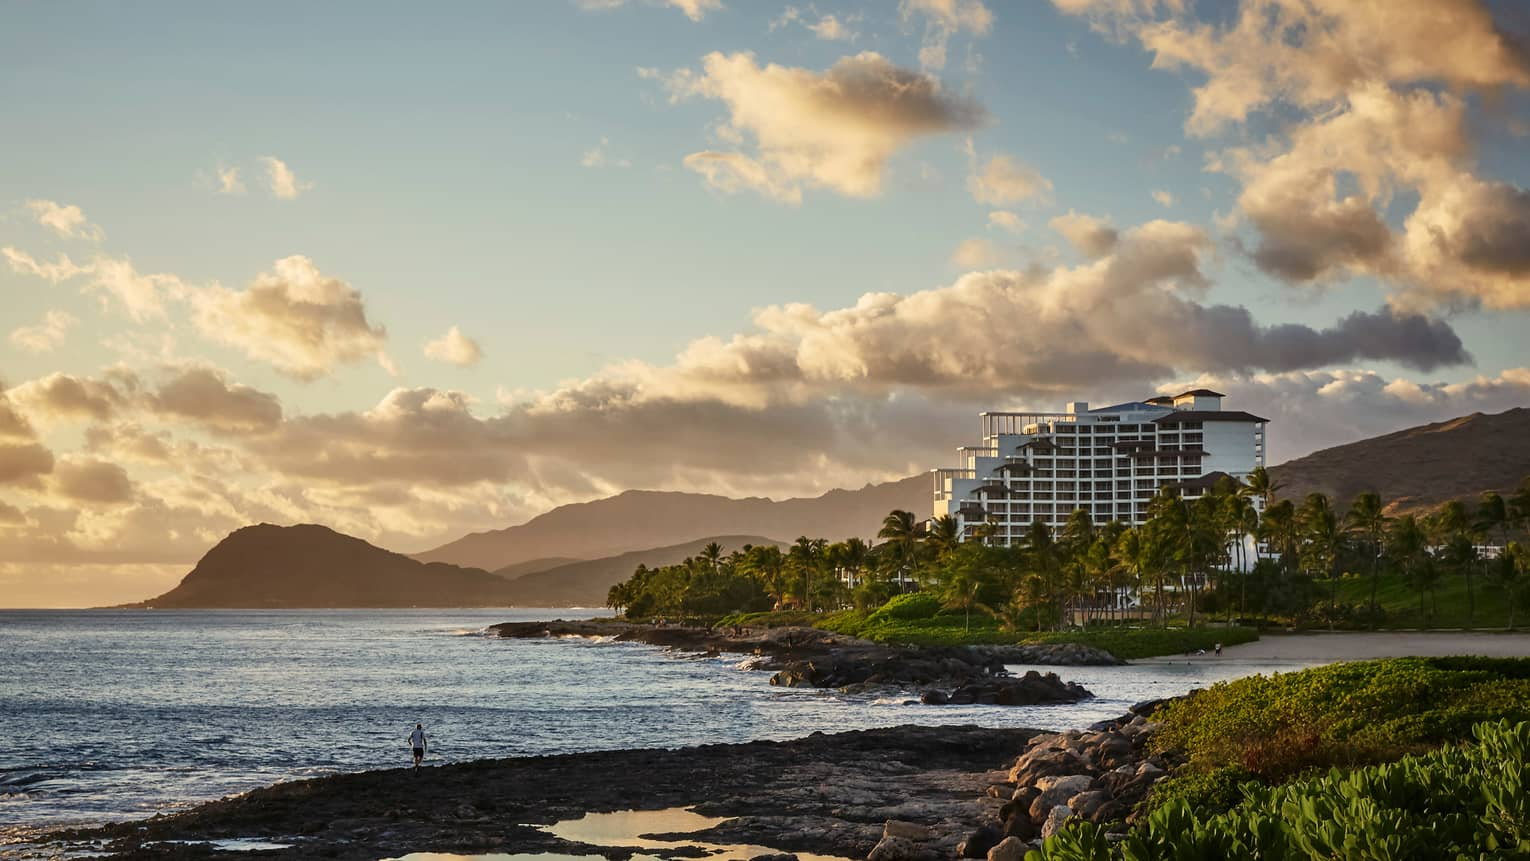 Sunset Over Four Seasons Resort Oahu Building On Rugged Coast Waianae Mountains